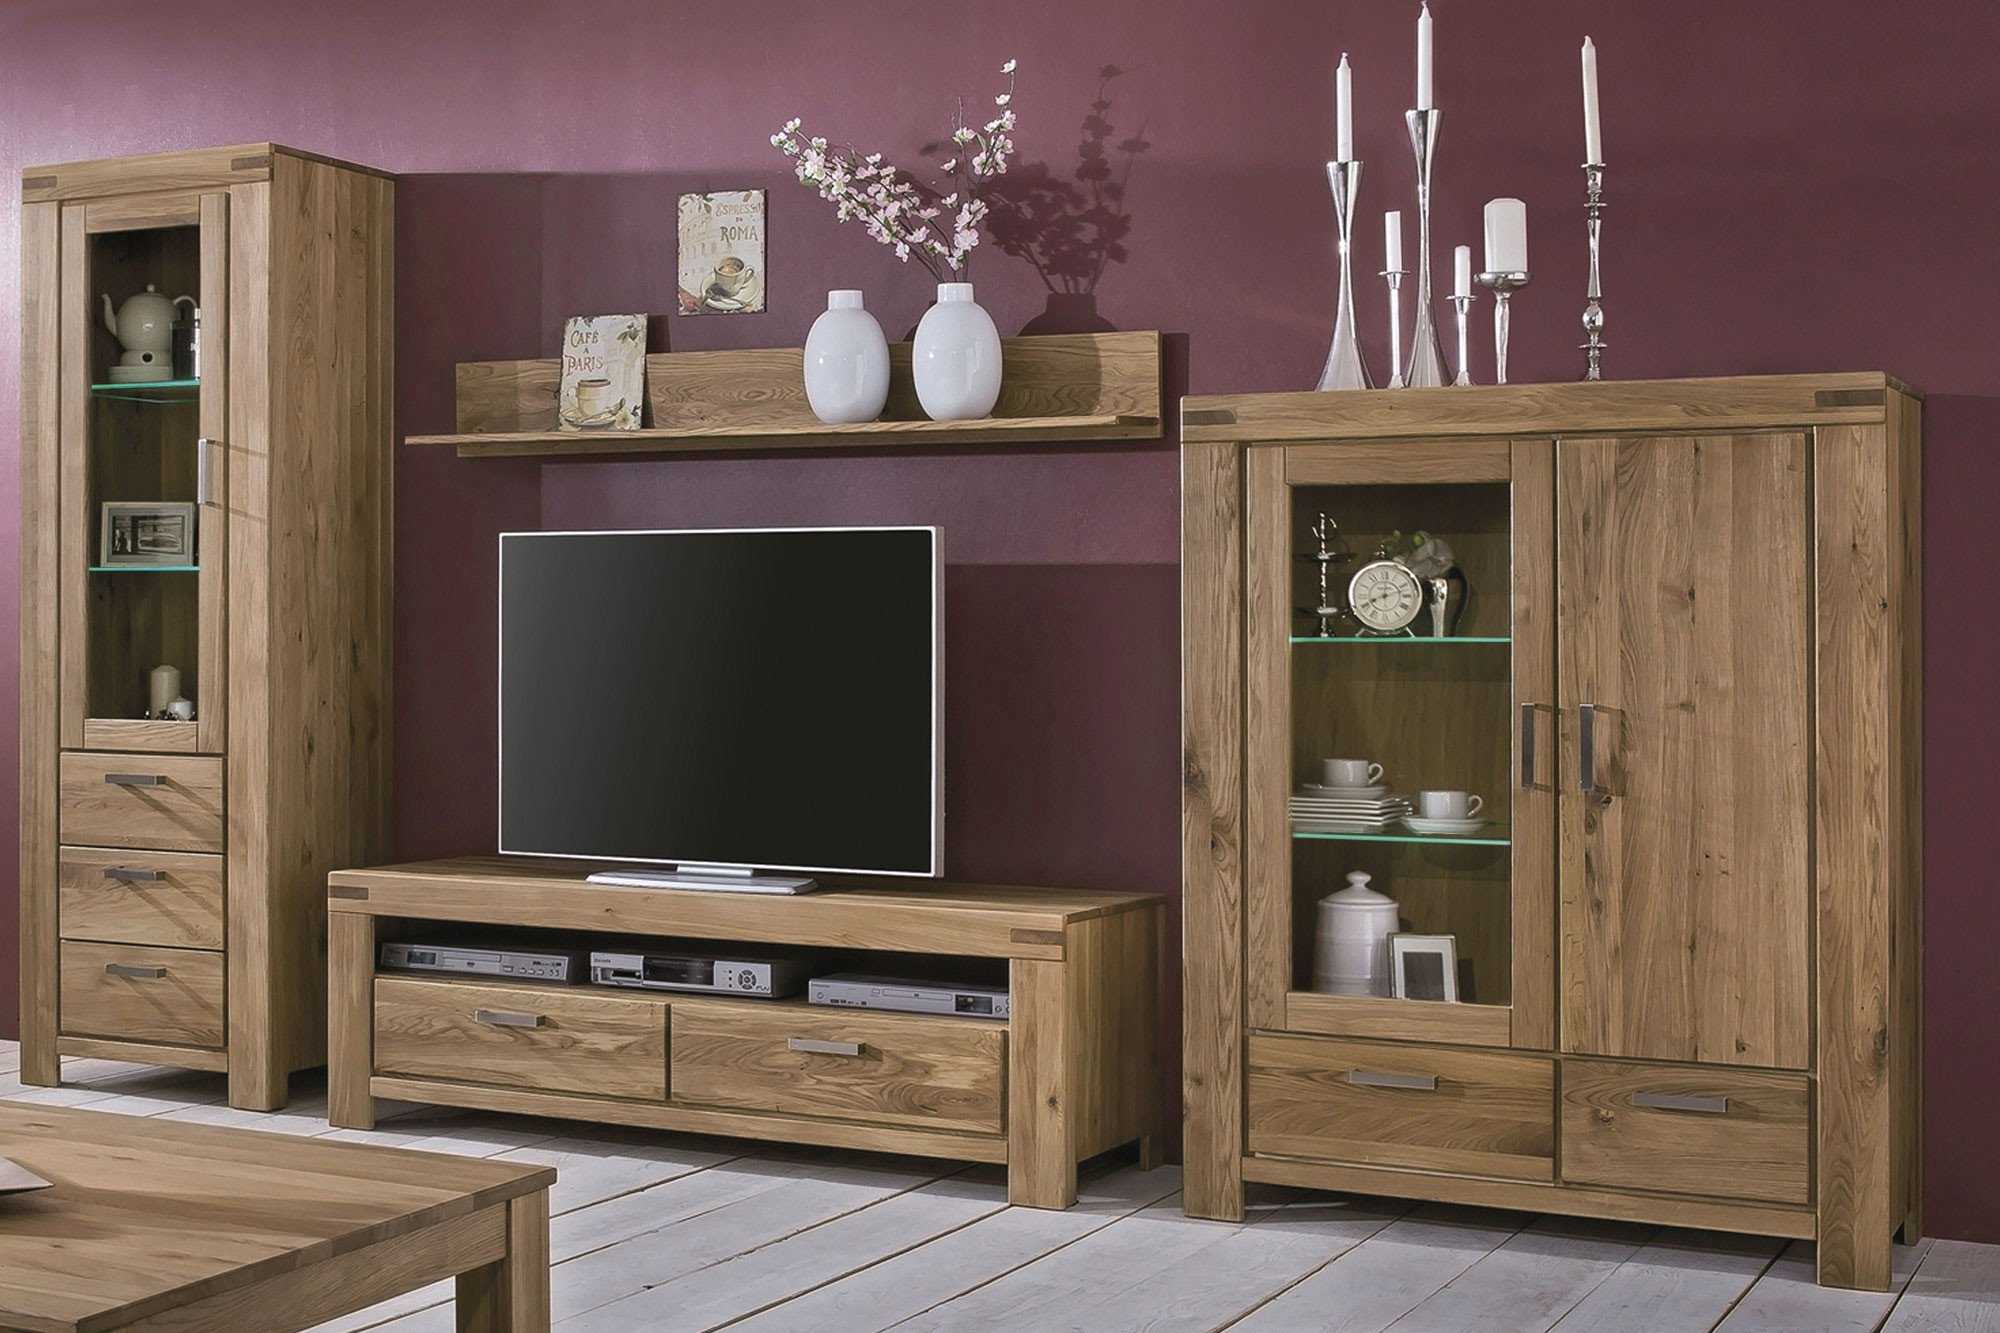 elfo m bel wohnwand kira massive wildeiche ge lt m bel. Black Bedroom Furniture Sets. Home Design Ideas